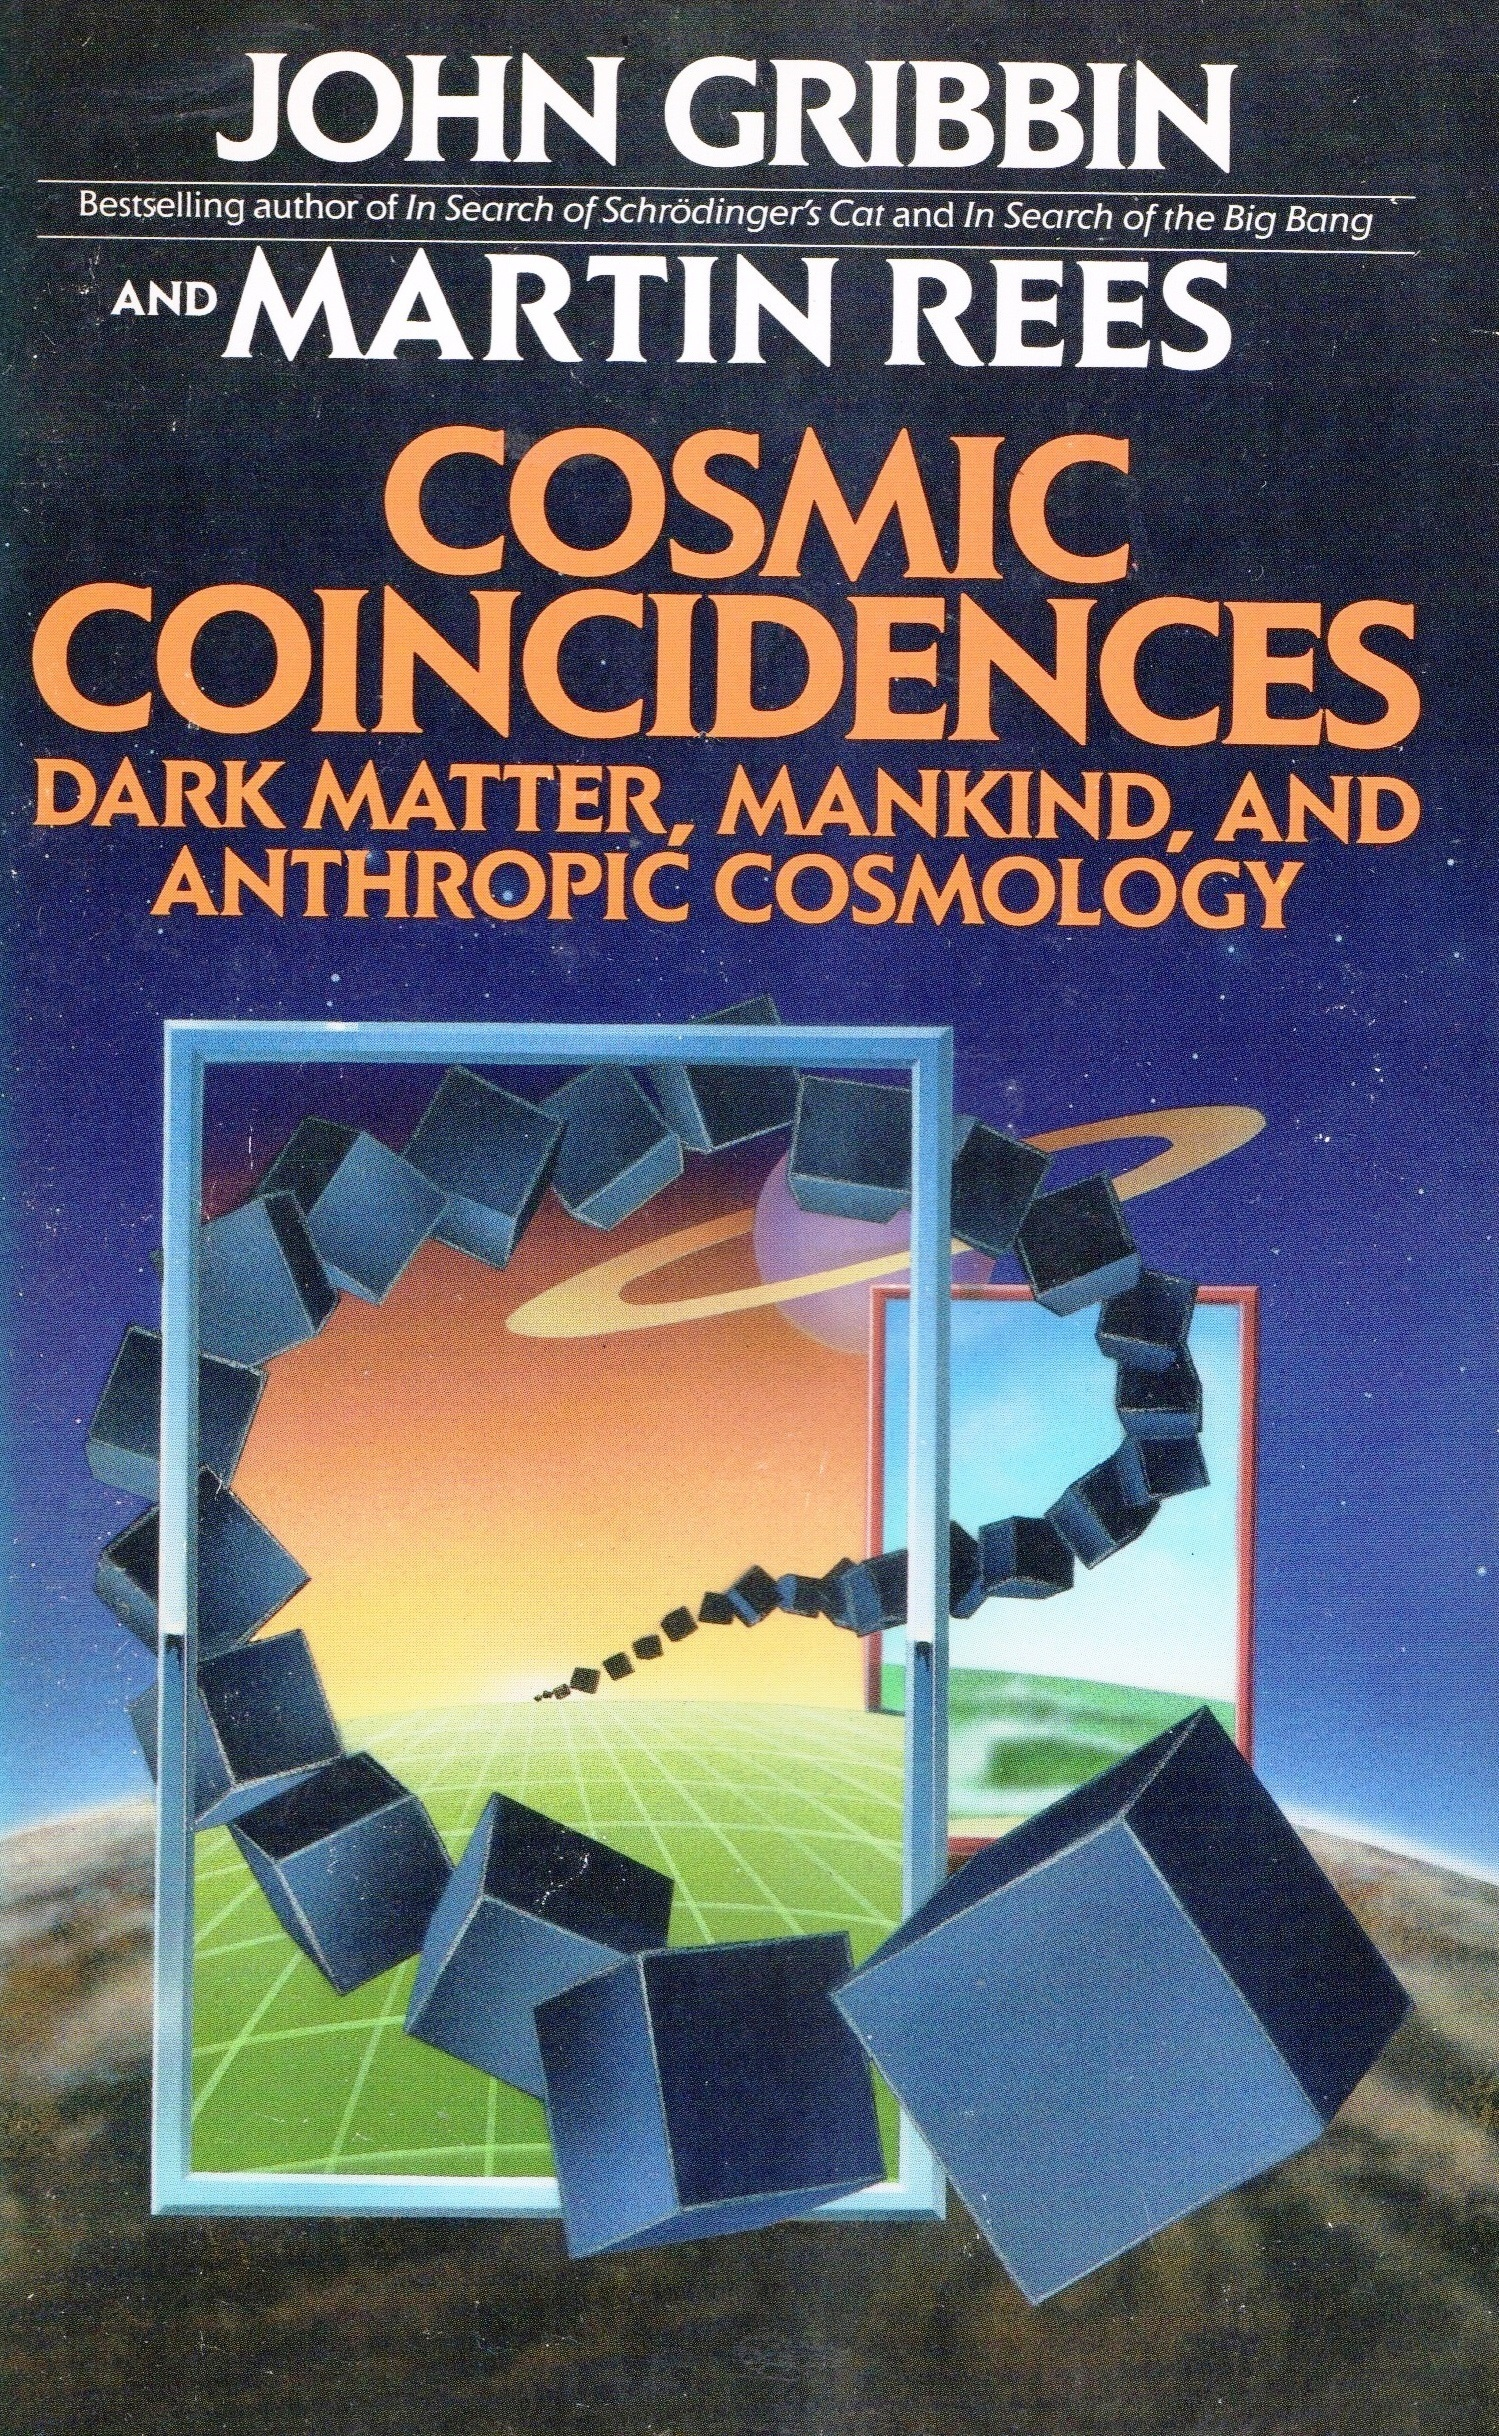 Cosmic coincidences   dark matter, mankind, and anthropic cosmology (1989, New York, NY   Bantam Books)